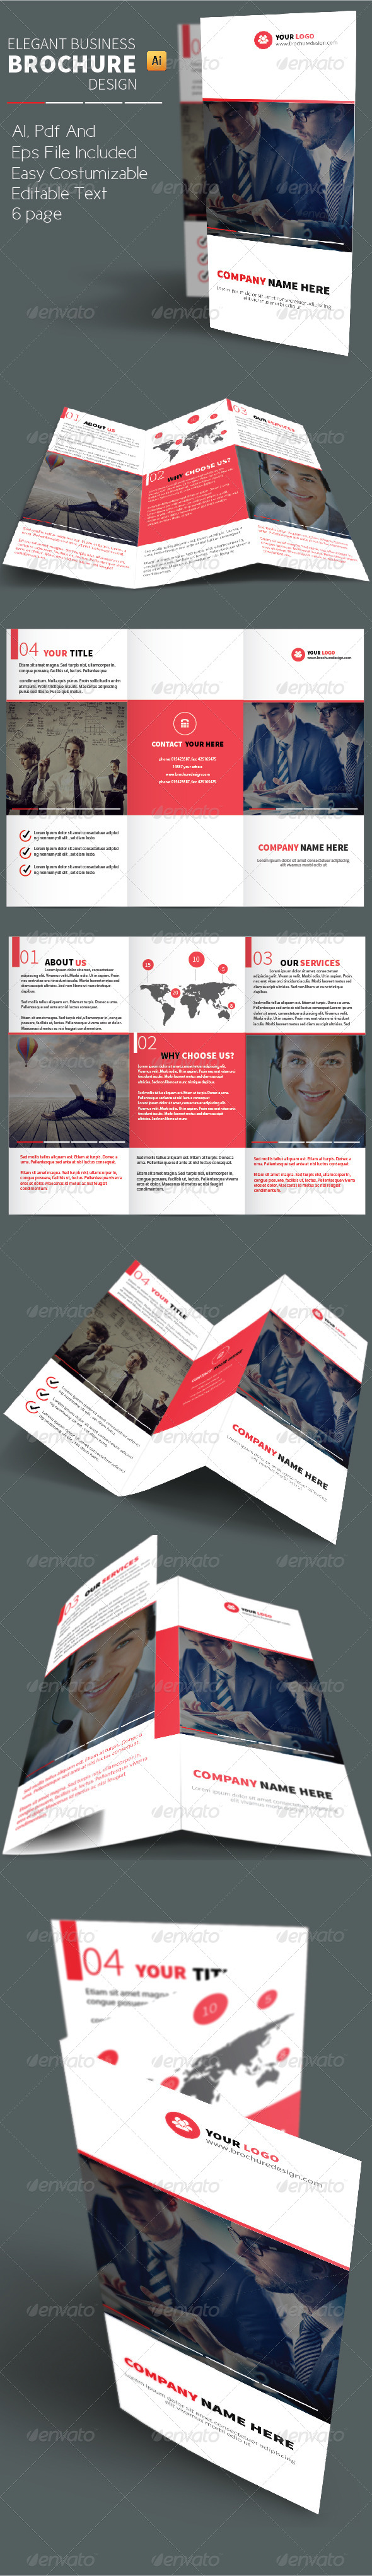 GraphicRiver Elegant Business Brochure Design 8737707